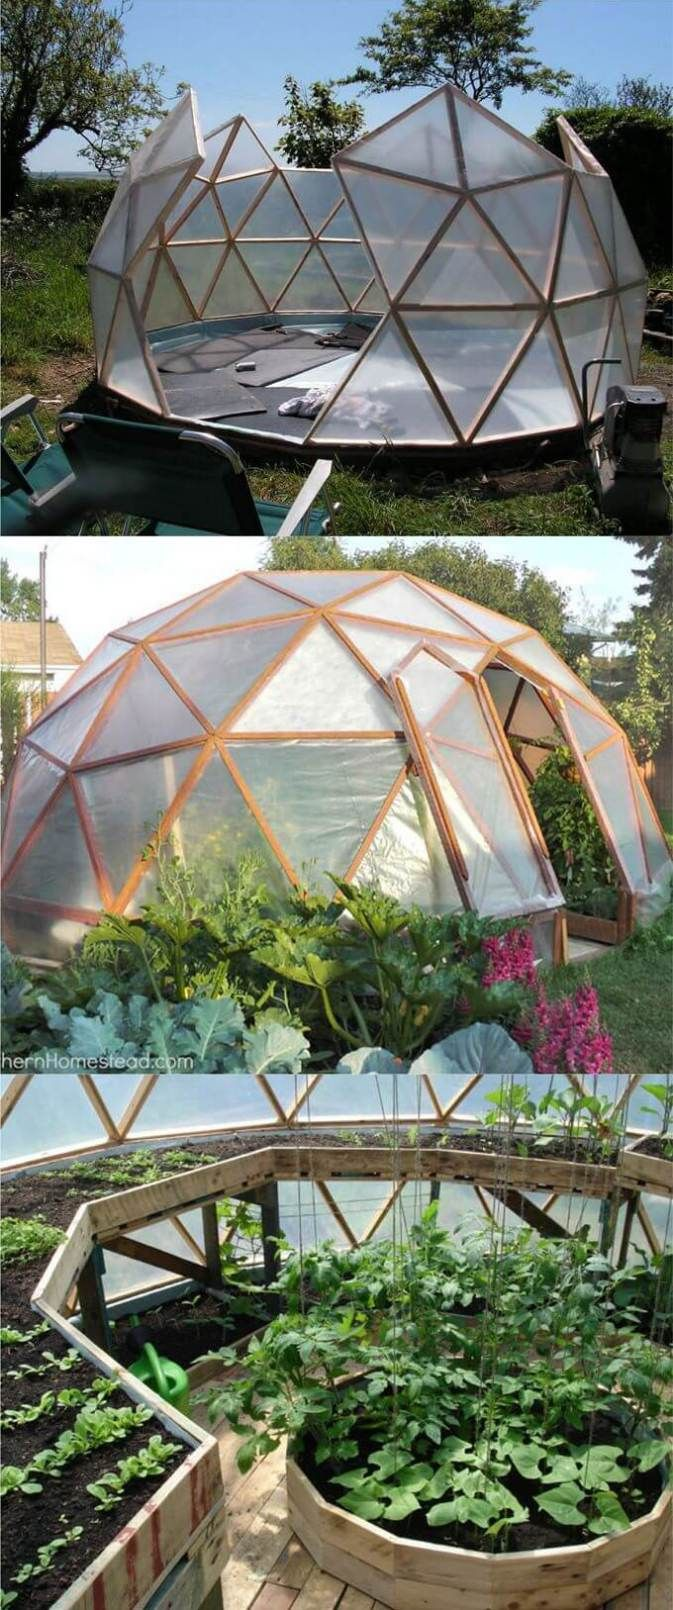 30 Cheap Homemade Greenhouse Plans Ideas You Can Build Free Diy Greenhouse Backyard Cold Frame